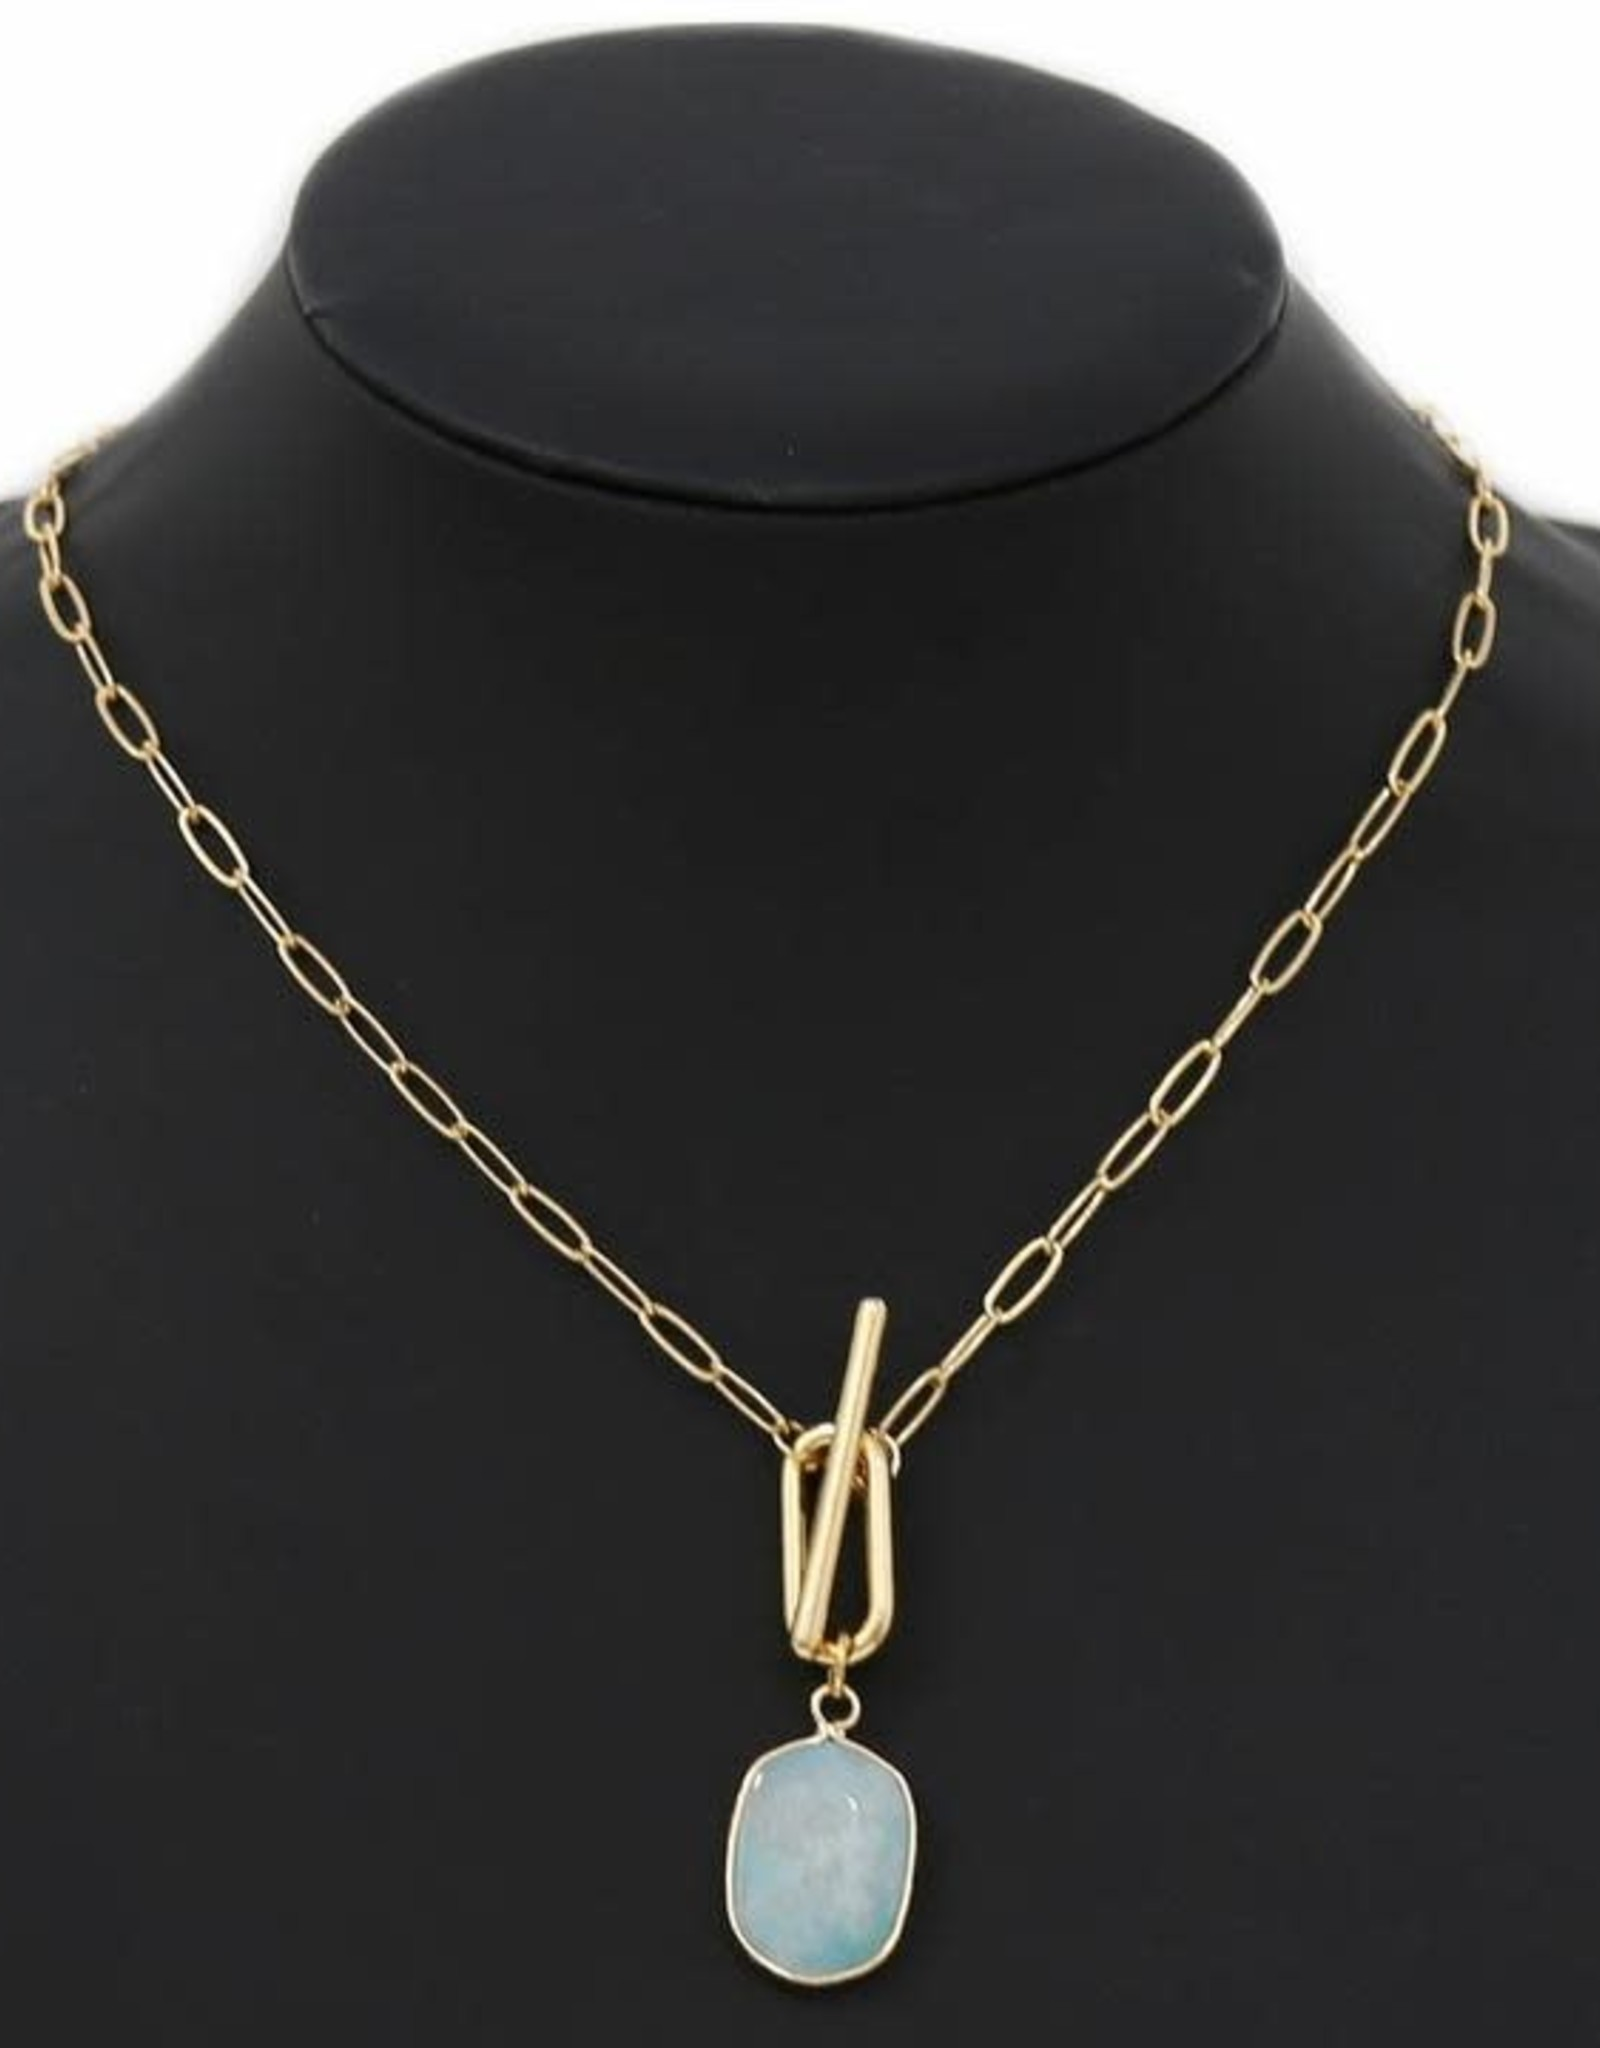 Natural Stone Pendant Linked Chain Necklace - Mint